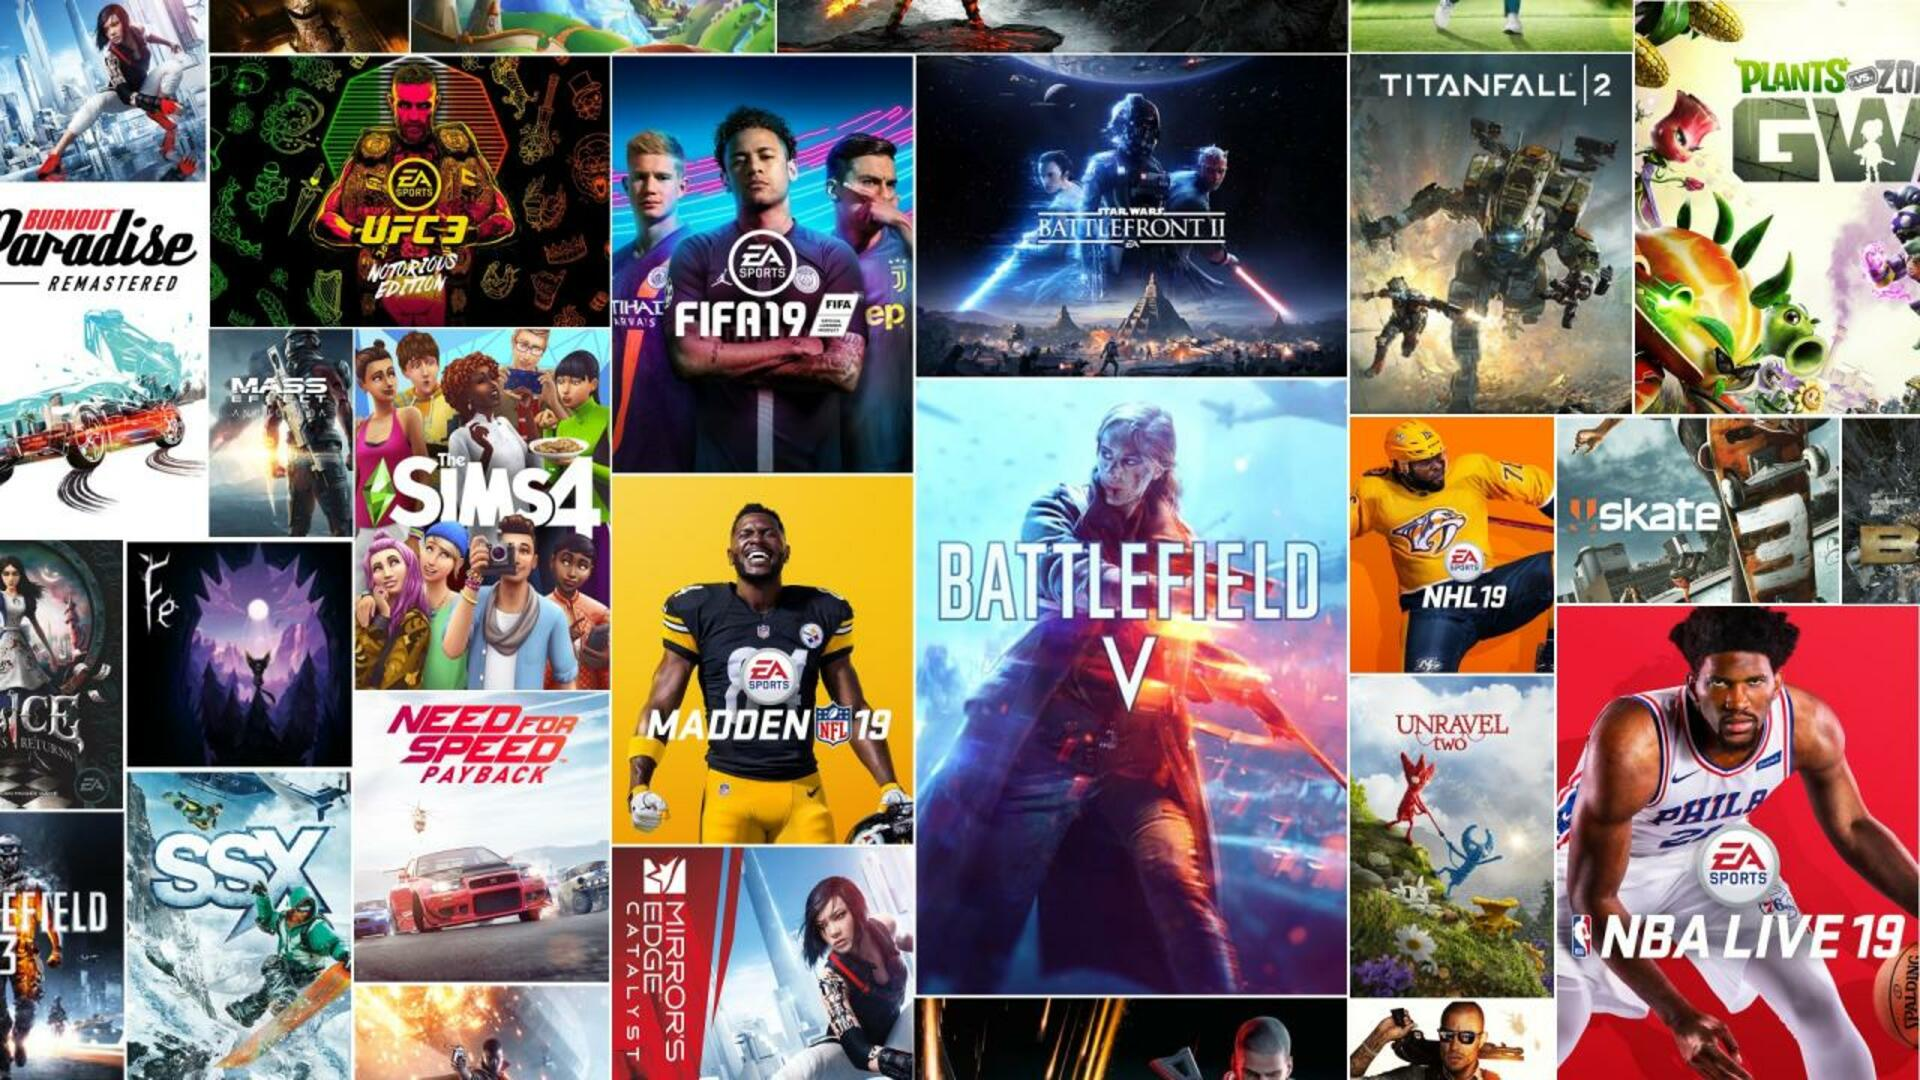 Game Pass Alternative Ea Access Is Now Just 79p For One Month